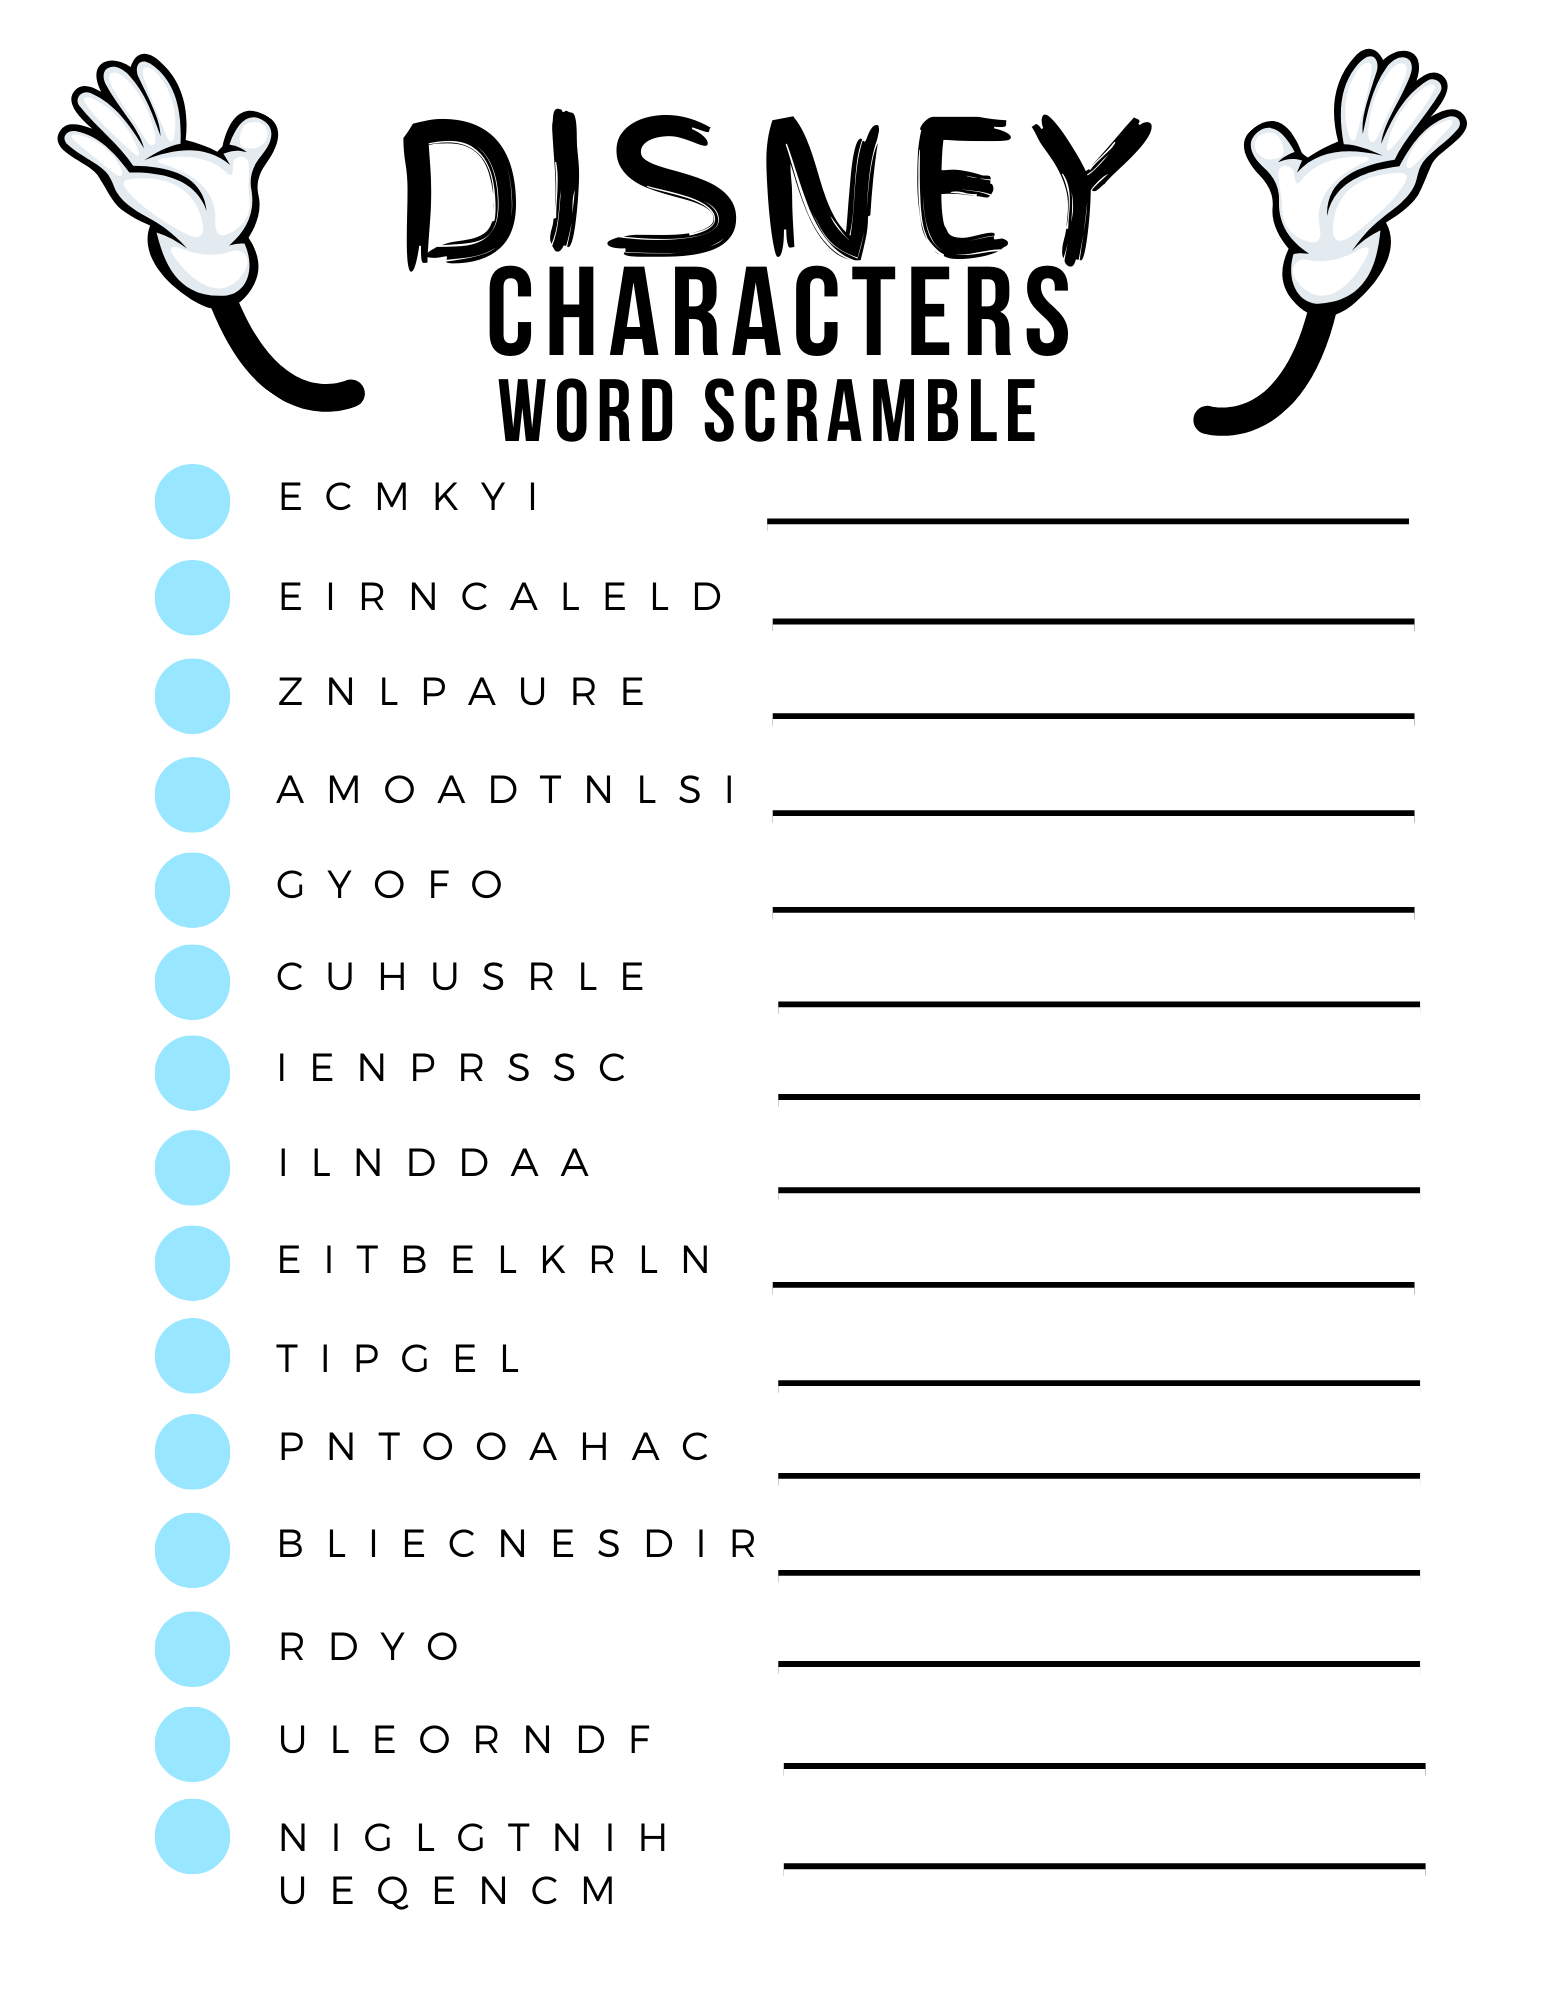 Disney Word Search Printable Characters Free Idea png